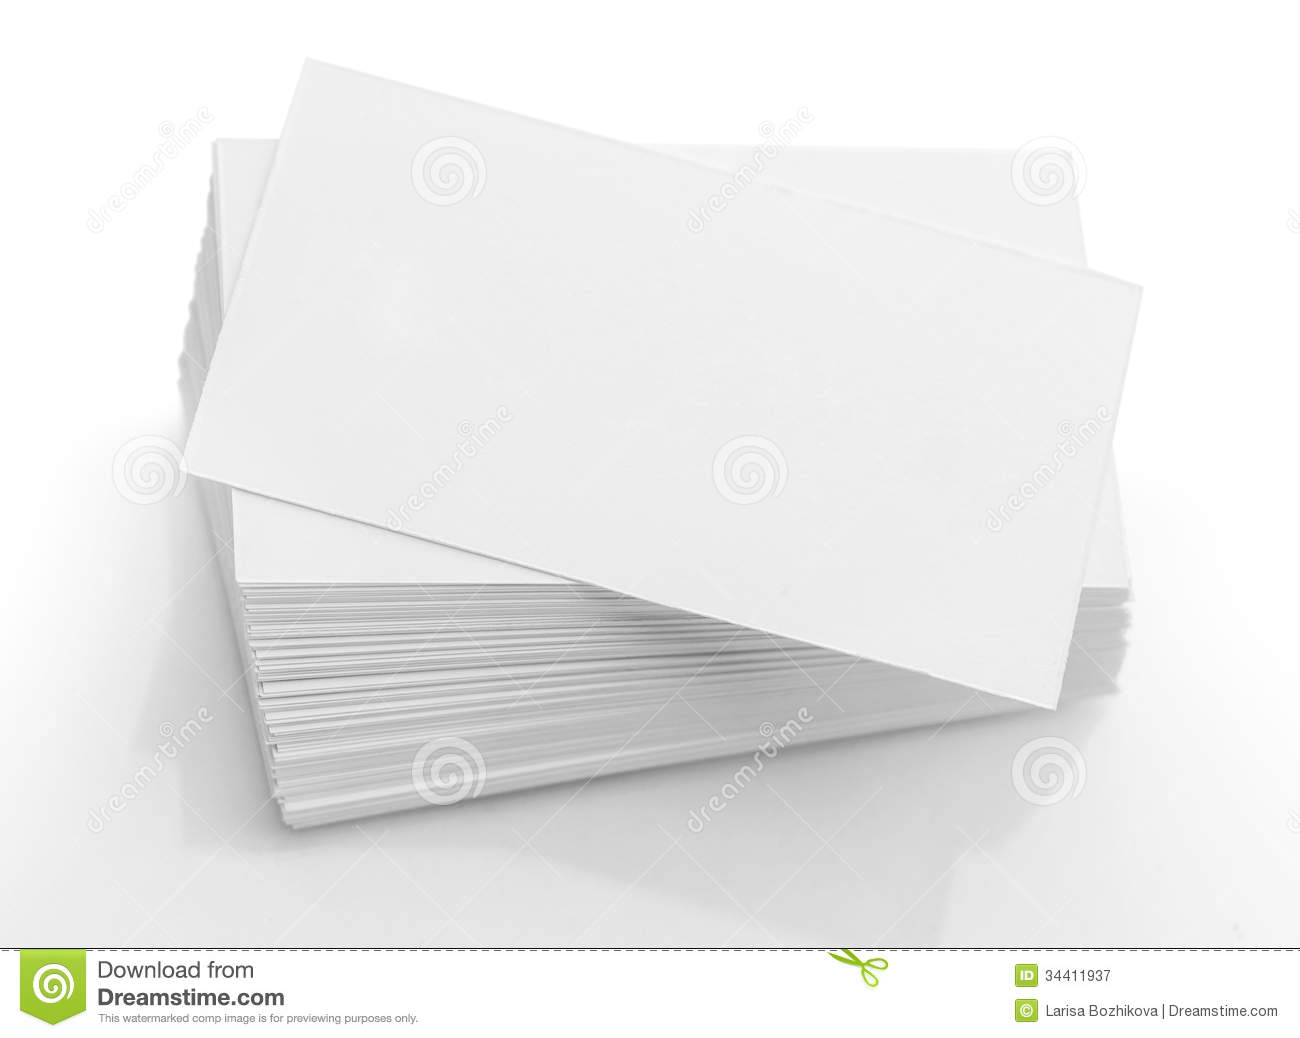 Blank Business Card Royalty Free Stock Photography - Image: 34411937